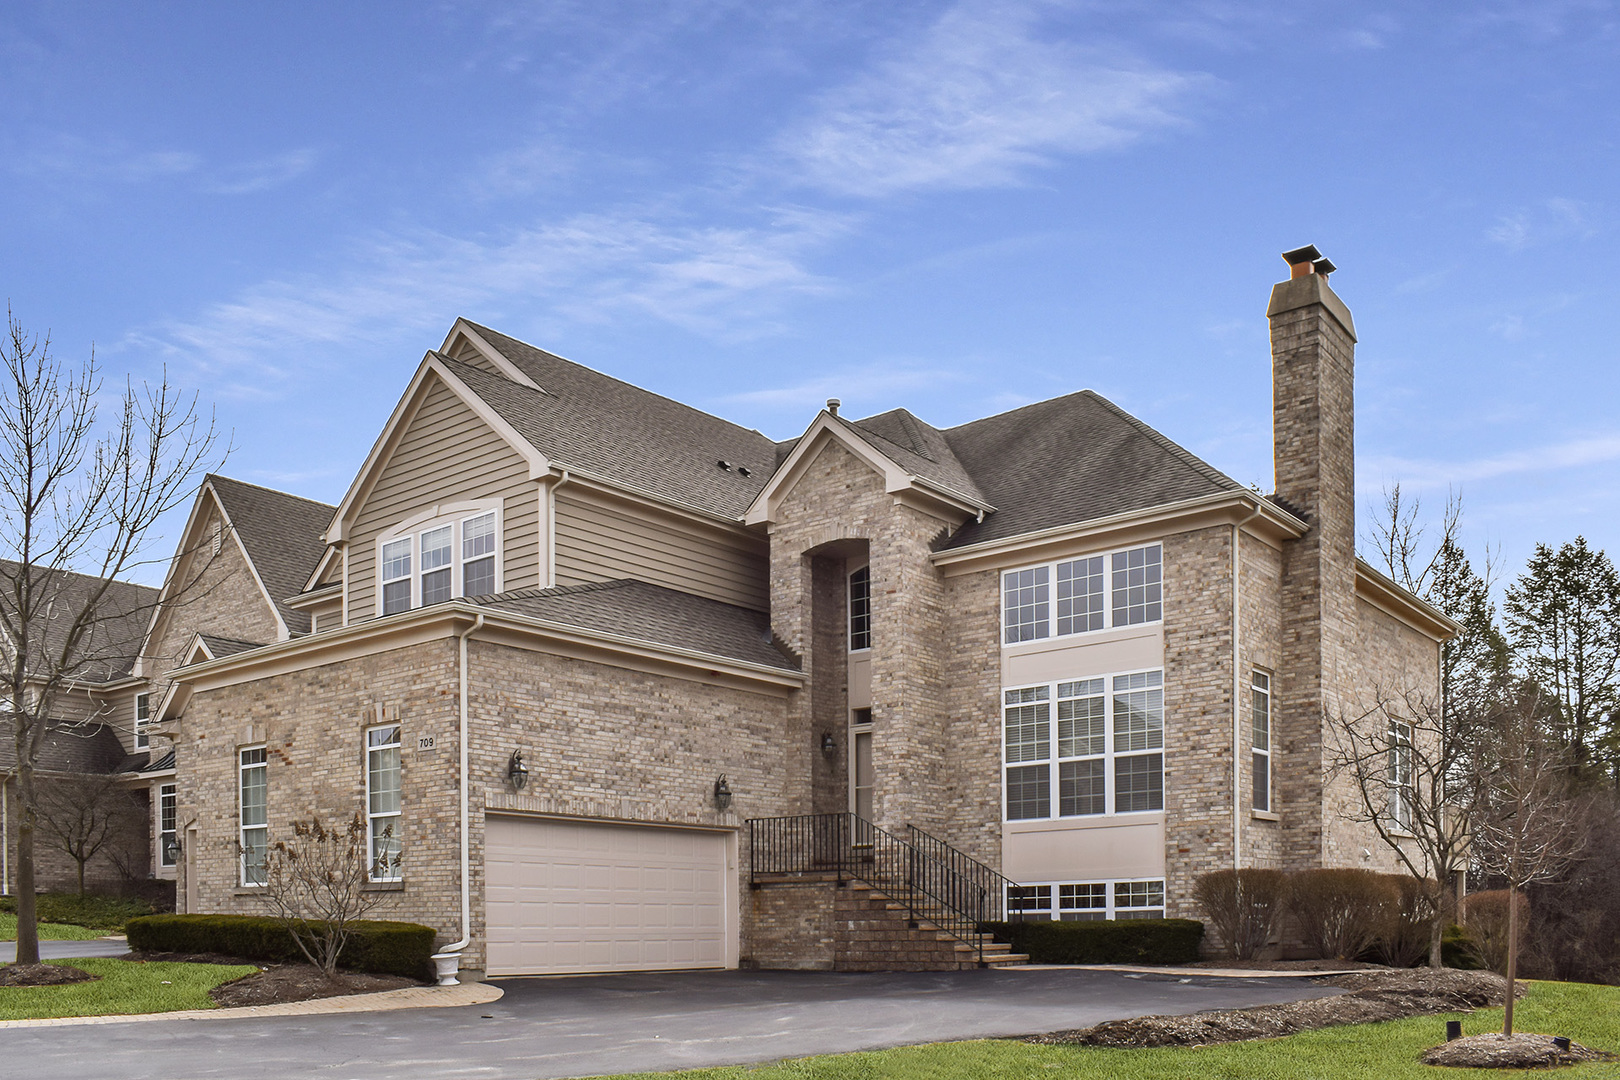 709 Stone Canyon Circle Inverness, IL 60010